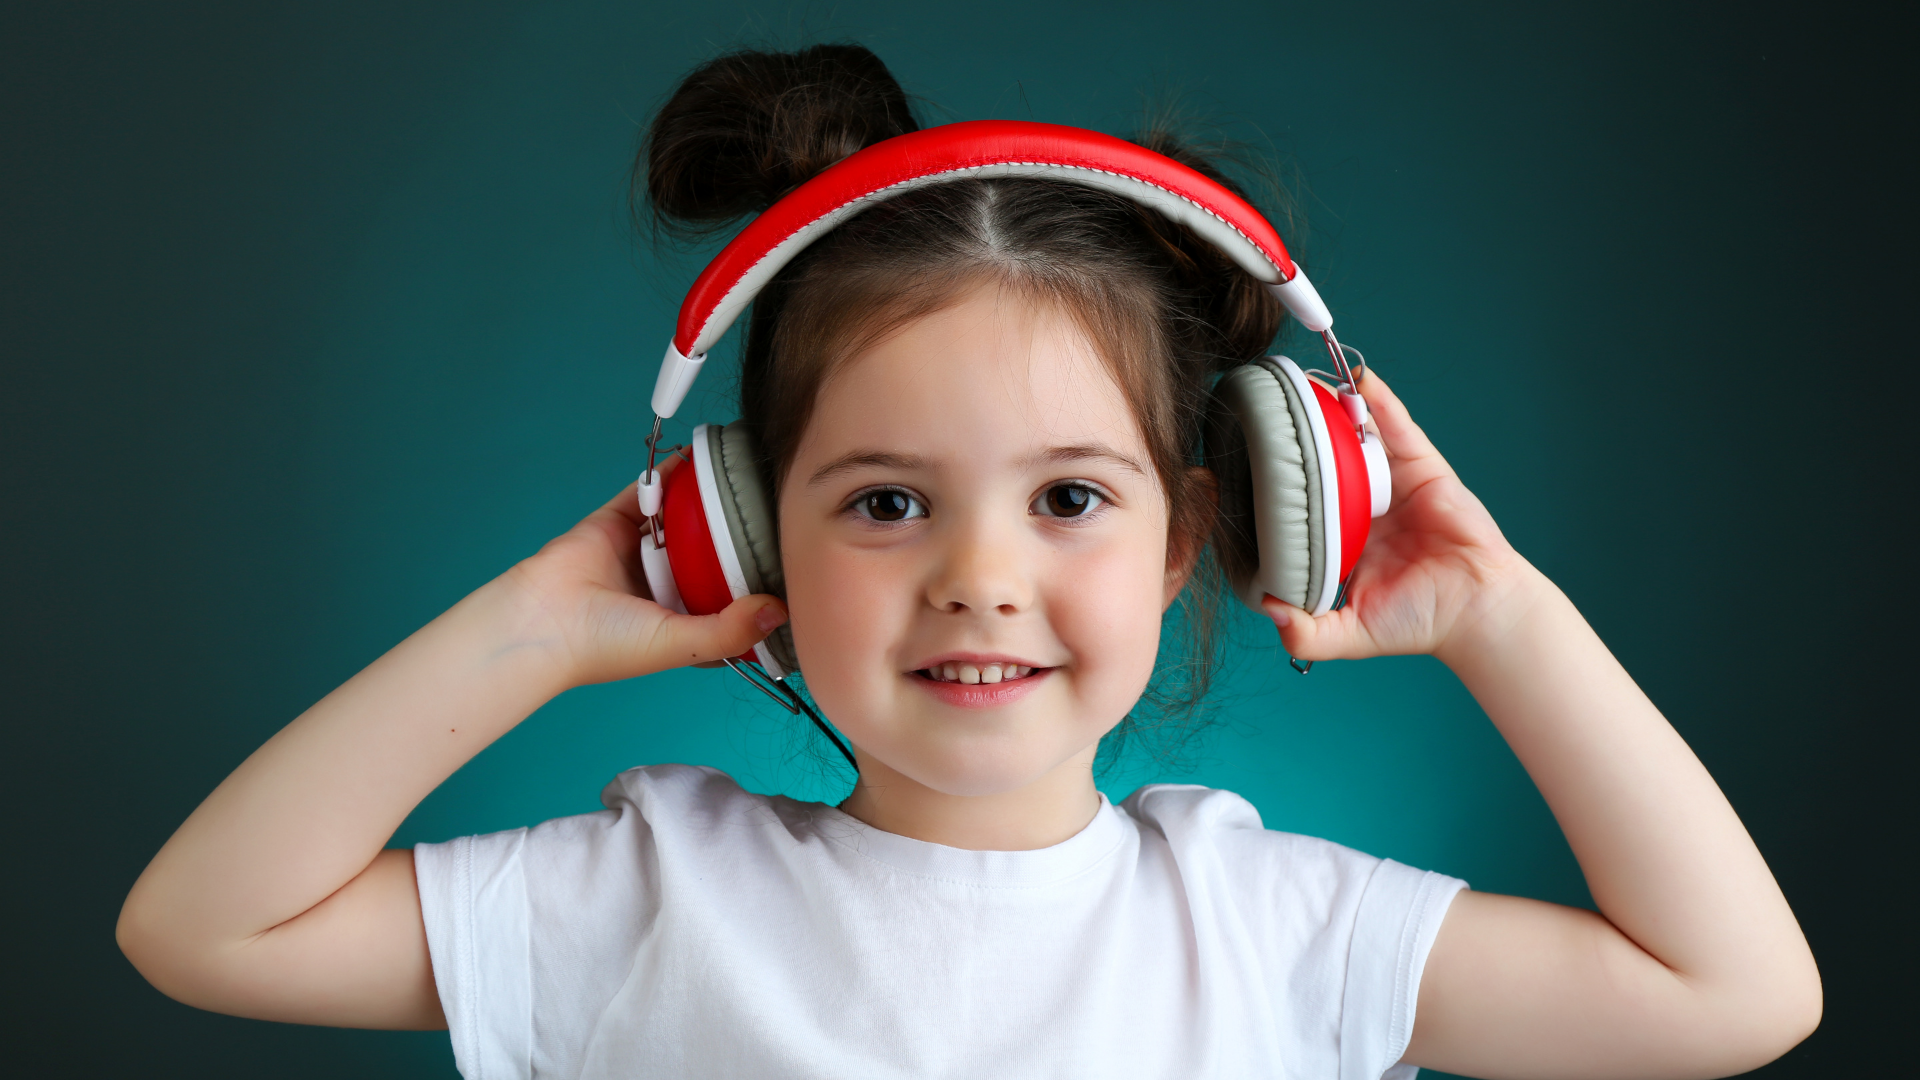 Kids Music Day - Curating Music for Kids - Feed Media Group